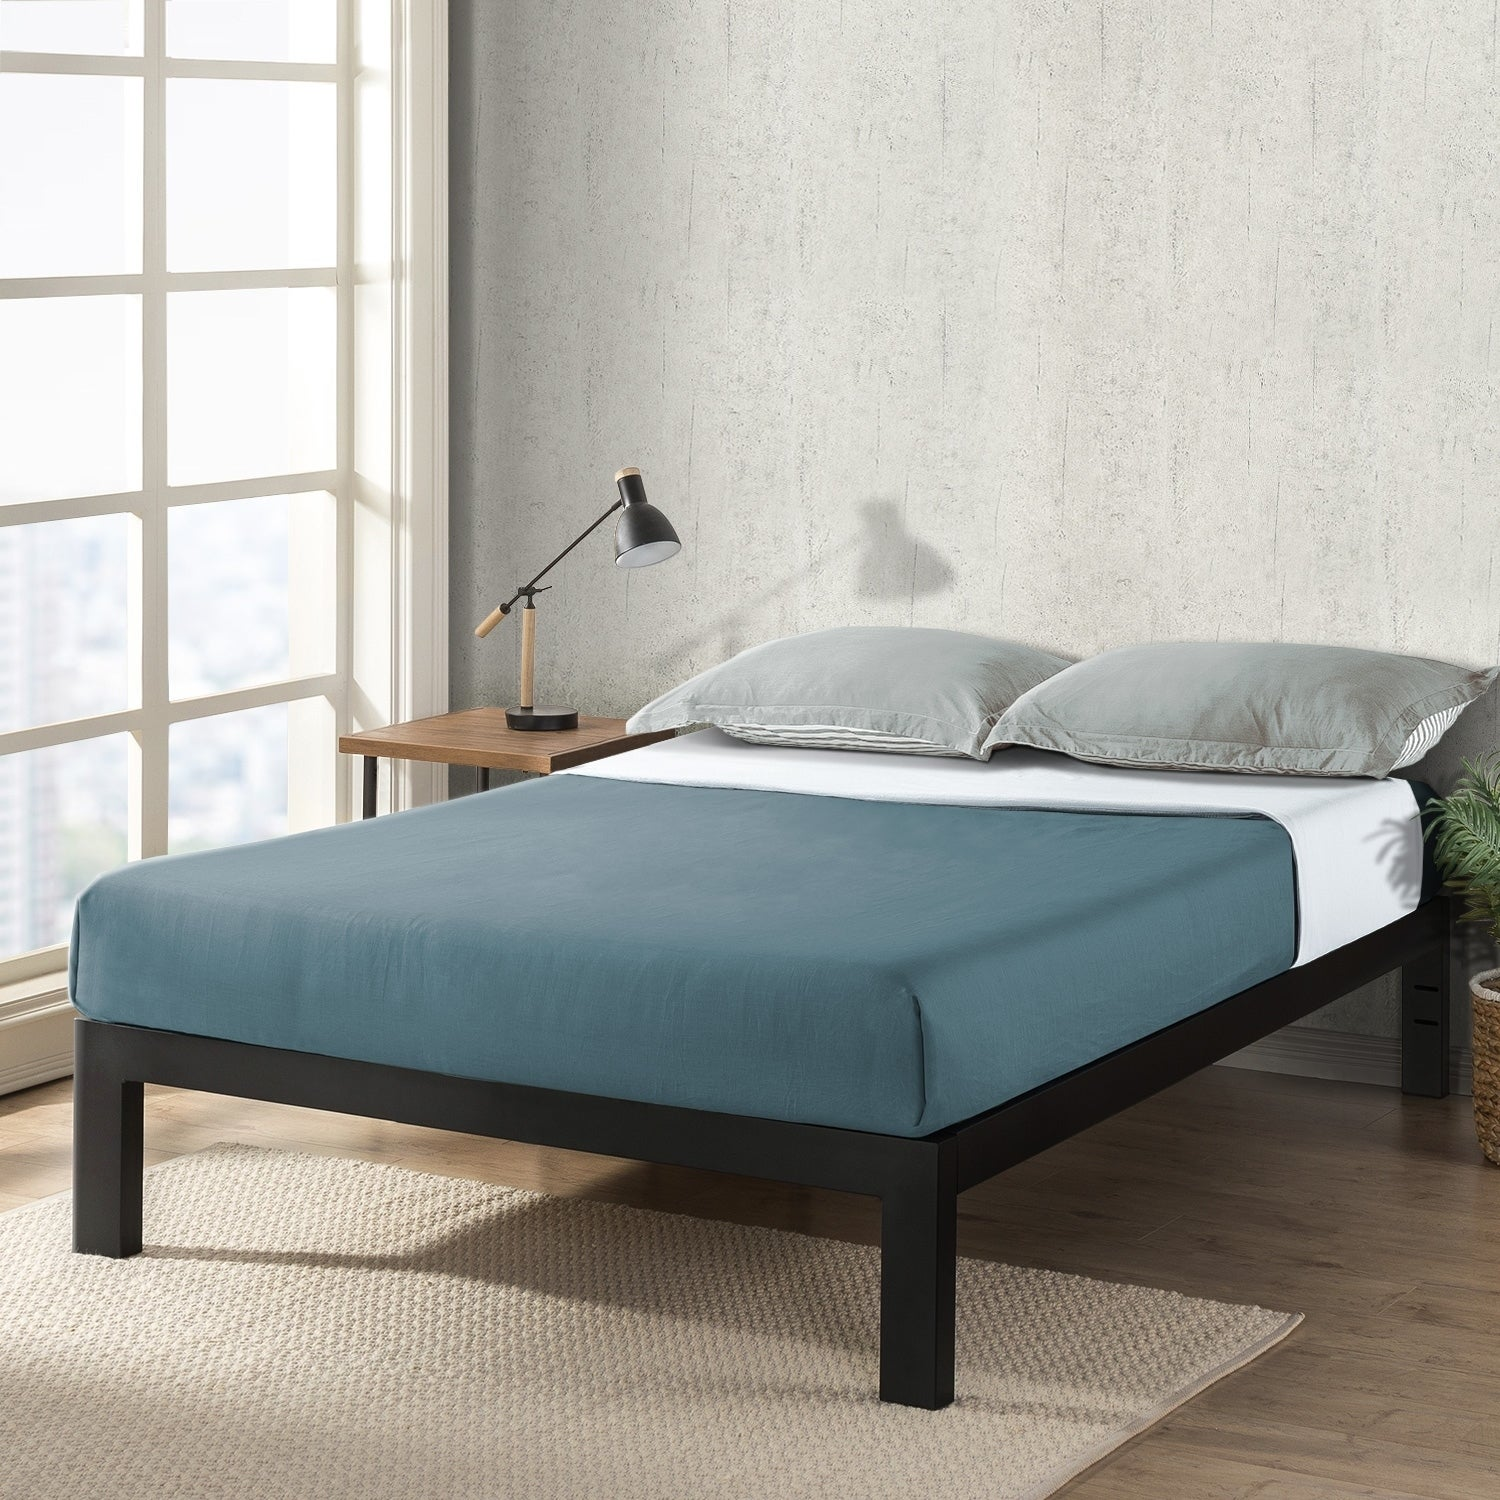 Twin Size Justmallet Frame 14 Inch Heavy Duty Steel Platform Beds With Wood Slat Mattress Foundation Black Crown Comfort On Sale Overstock 28057041